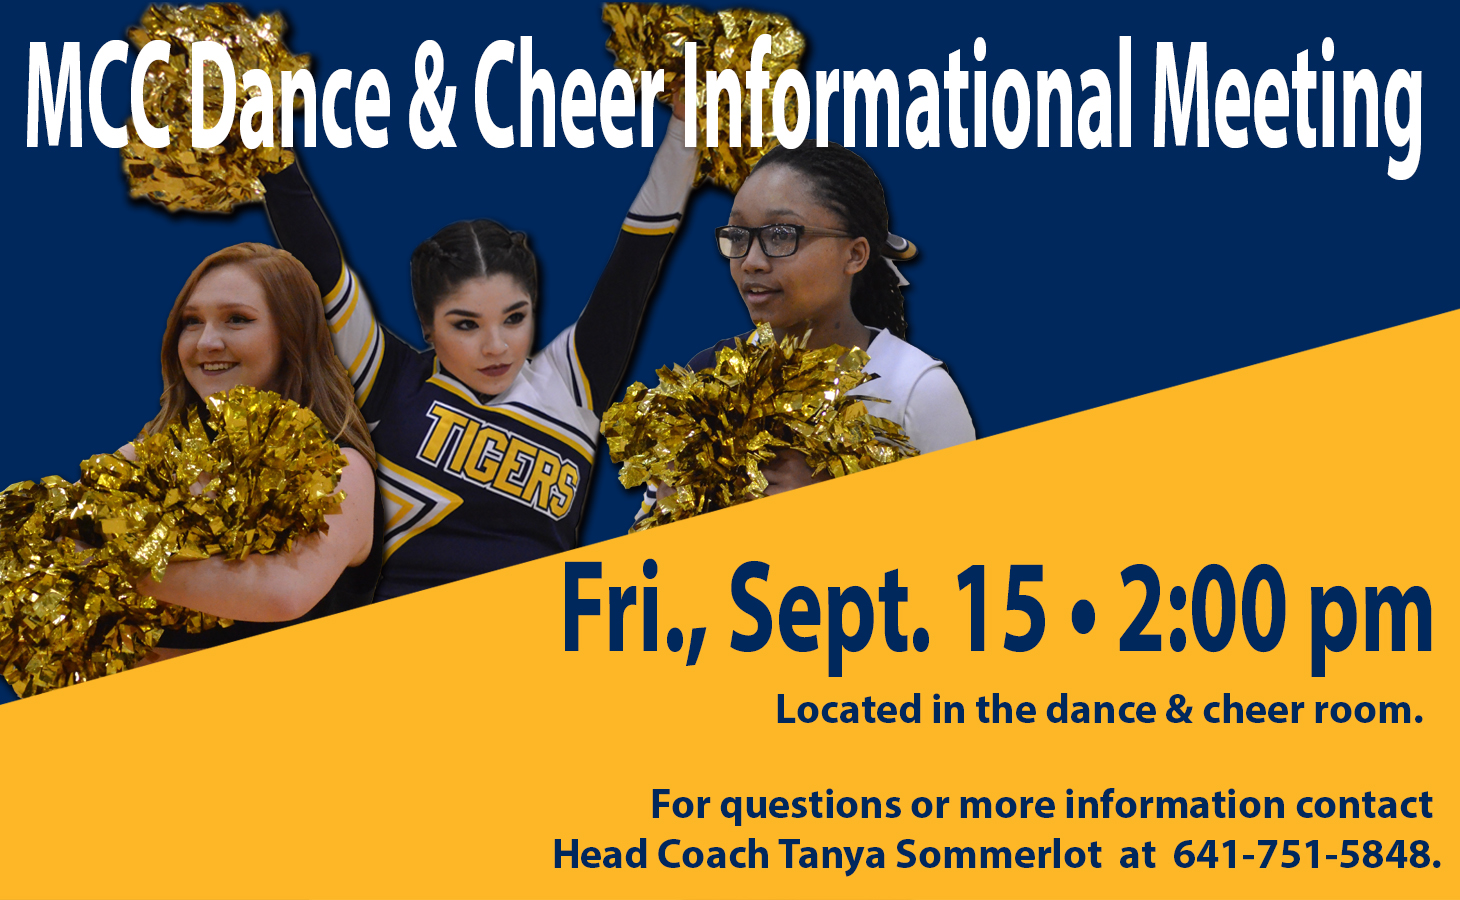 Informational MCC Dance and Cheer Meeting to be Held